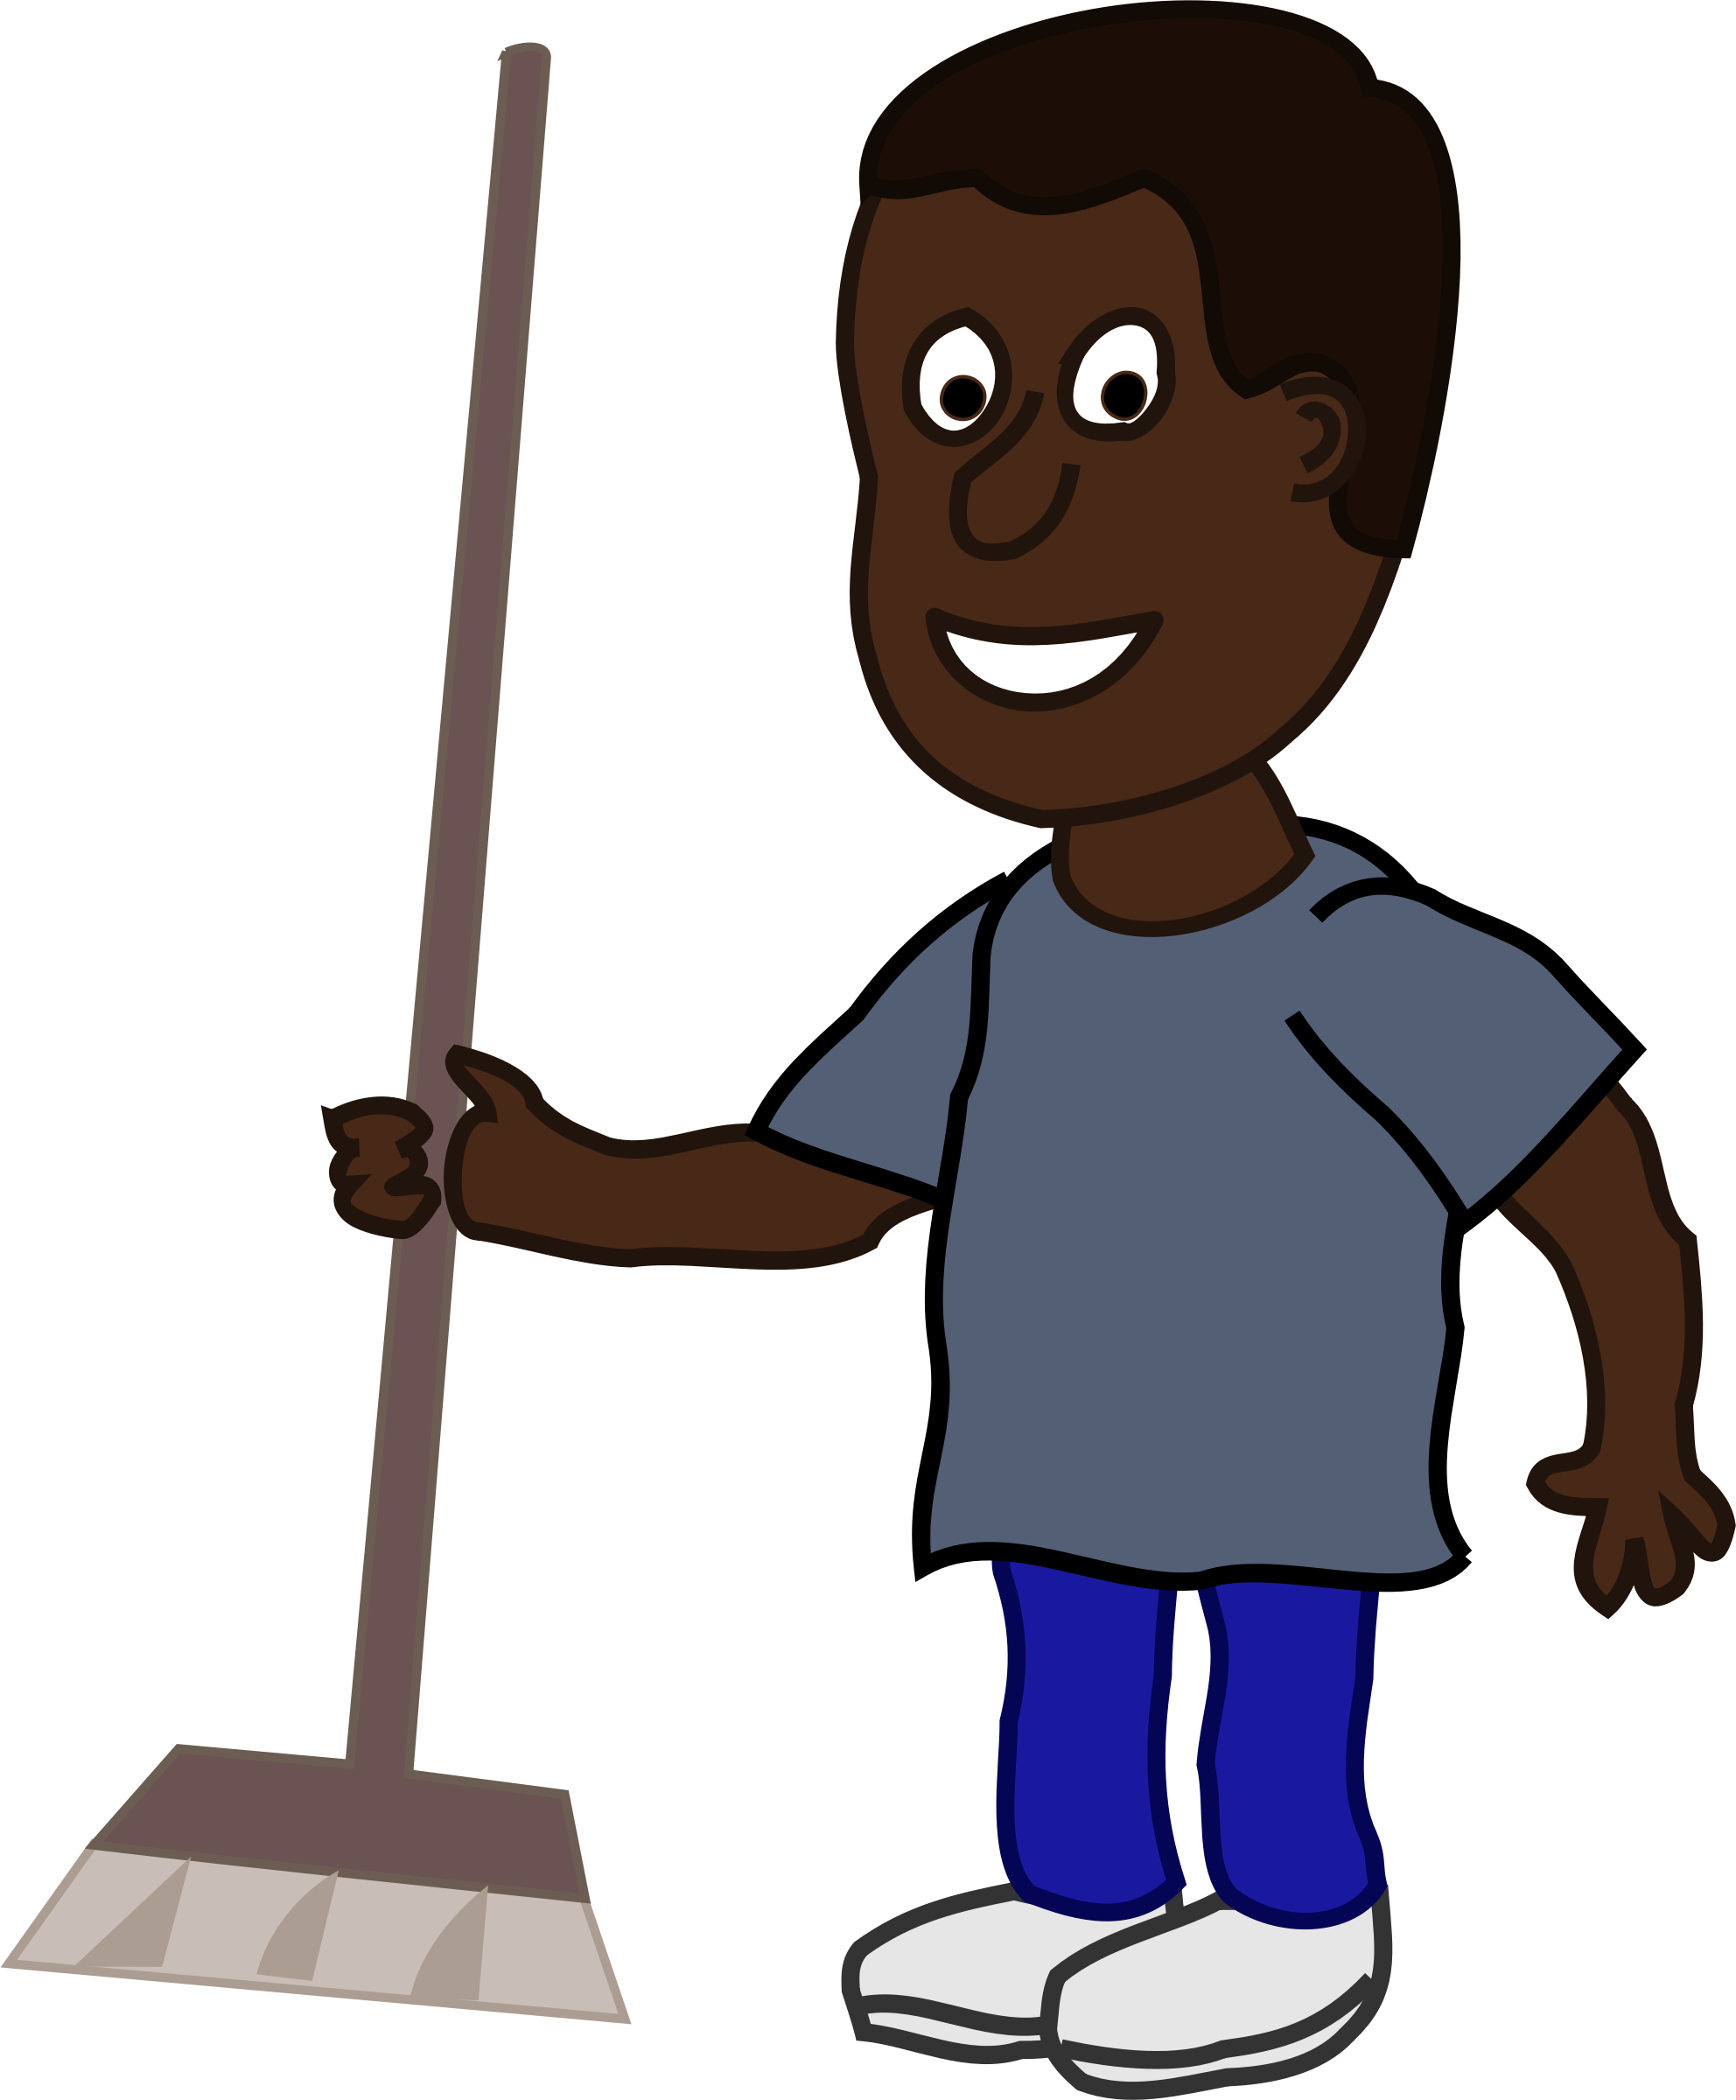 Man cleaning house clipart jpg royalty free download Cleaning clipart clean man FREE for download on rpelm jpg royalty free download